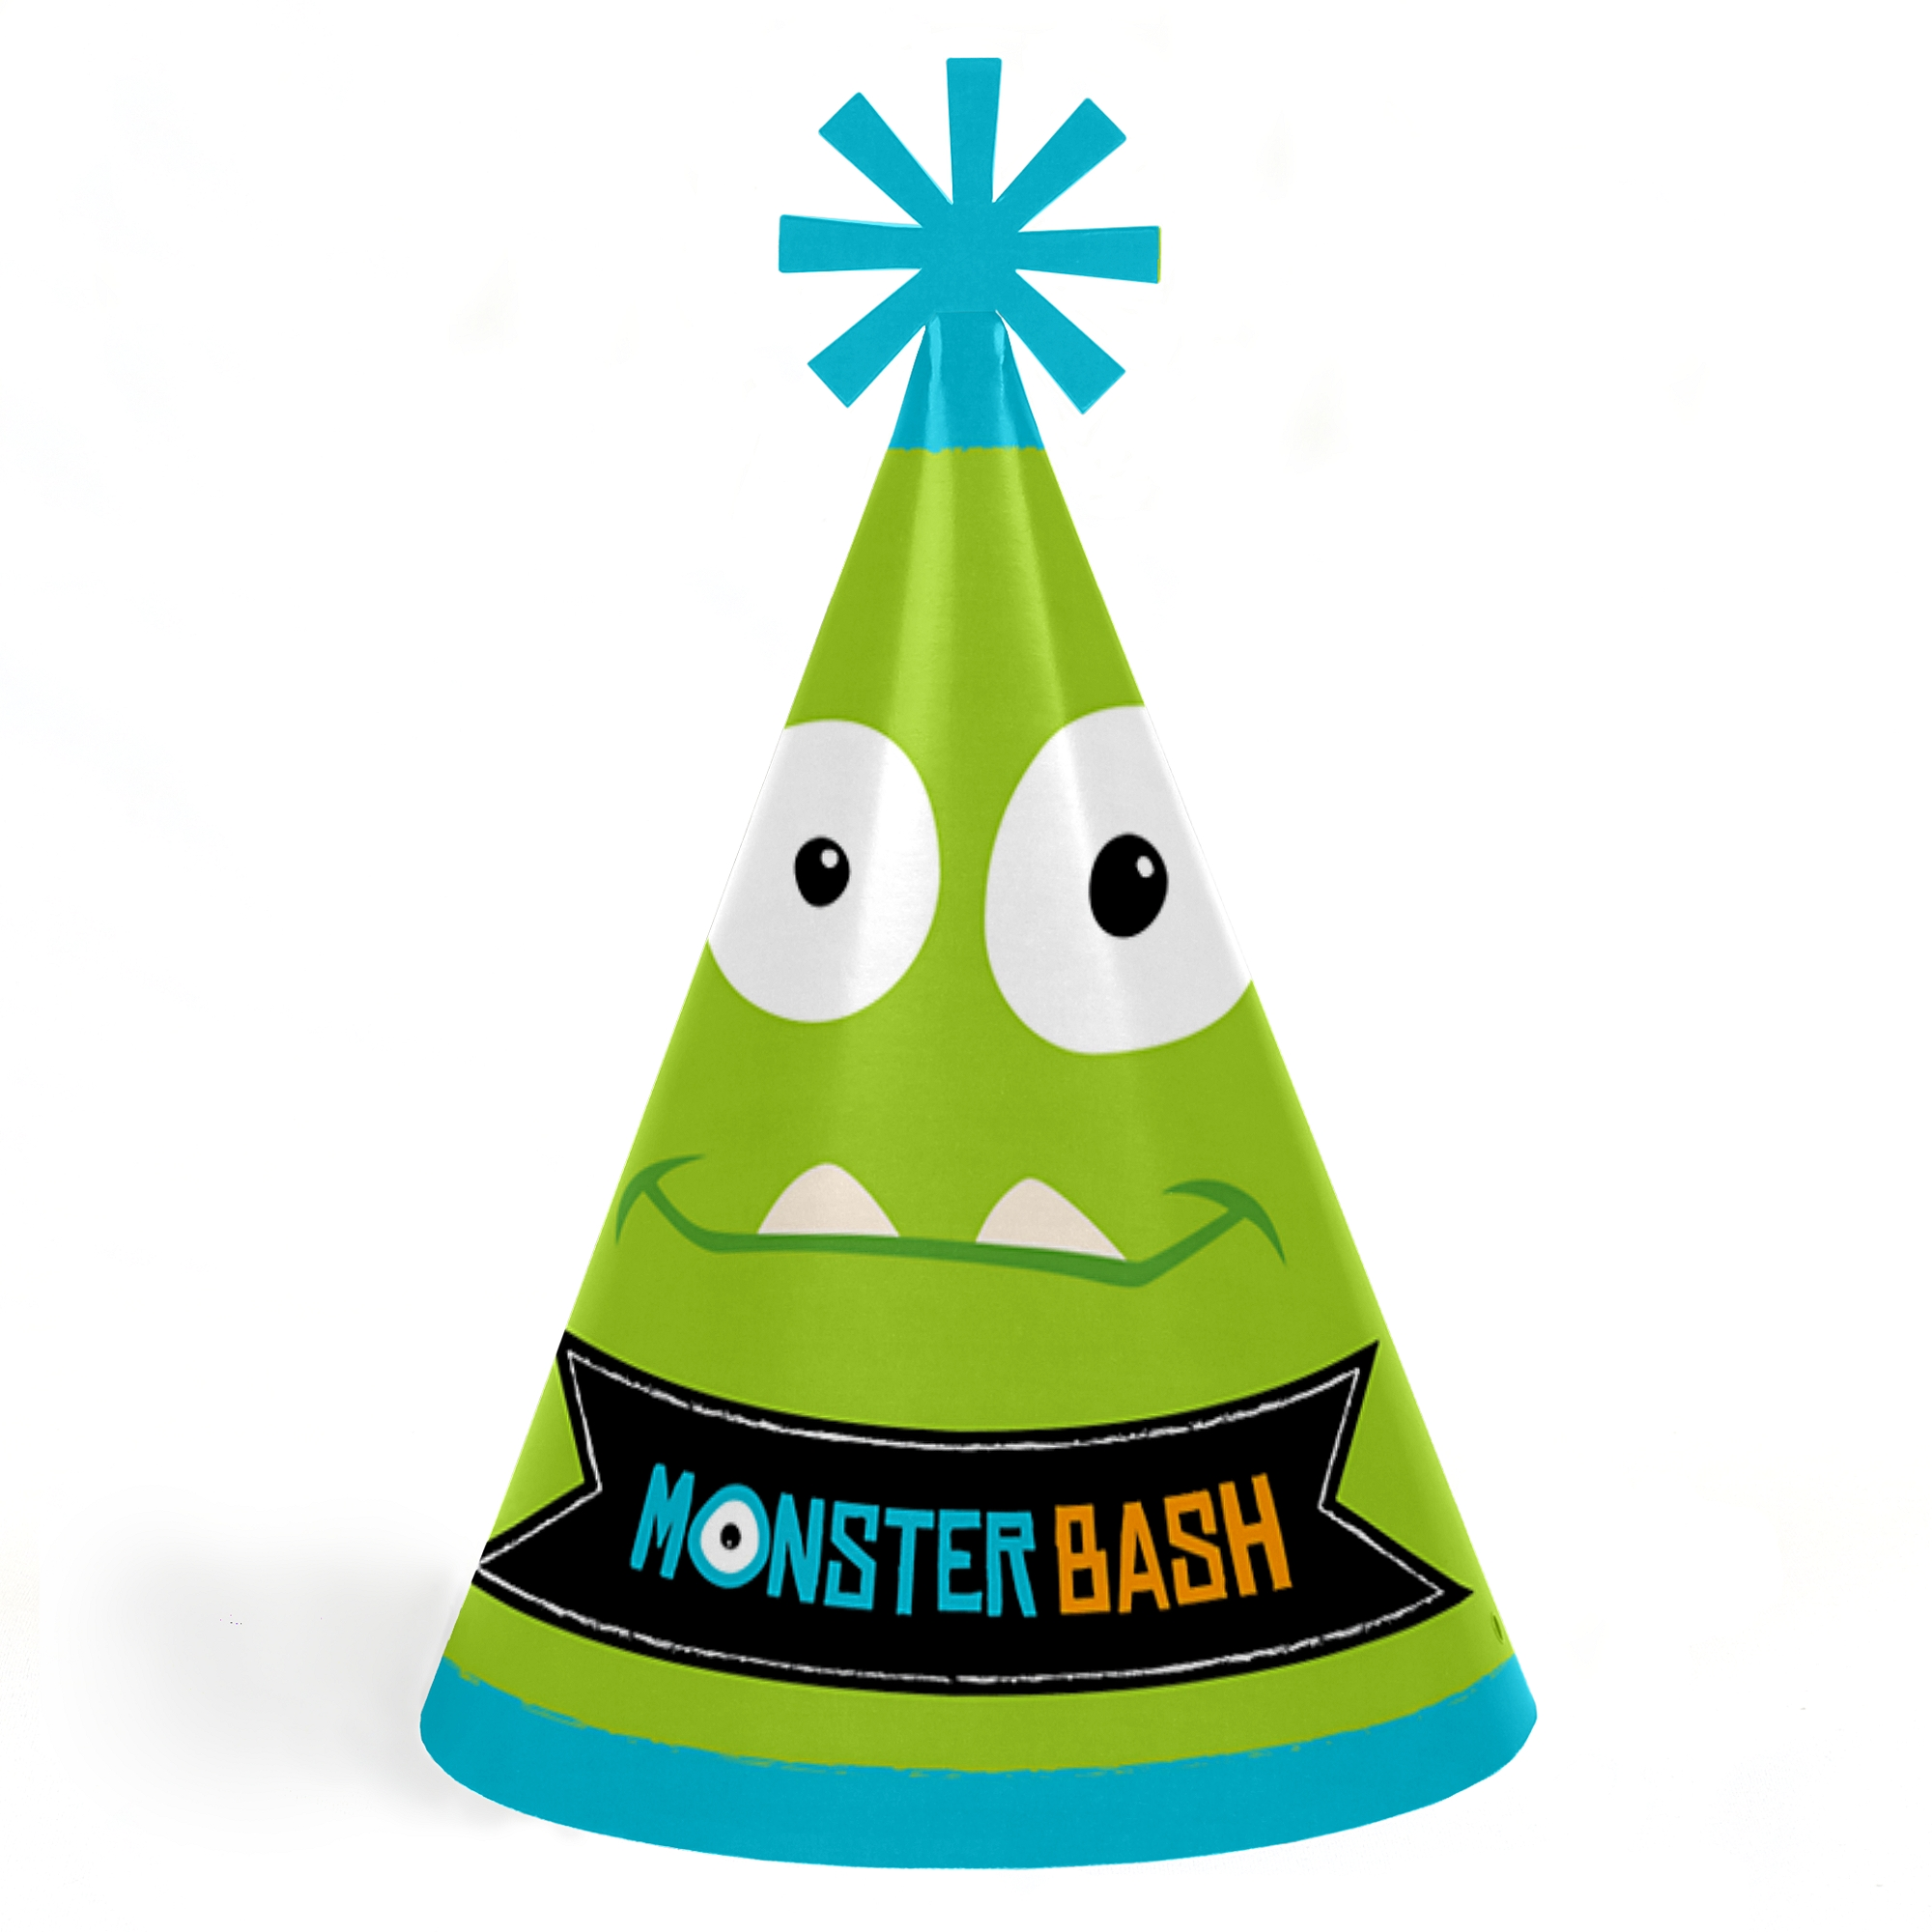 Monster Bash - Cone Little Monster Happy Birthday Party Hats for Kids and Adults - Set of 8 (Standard Size)